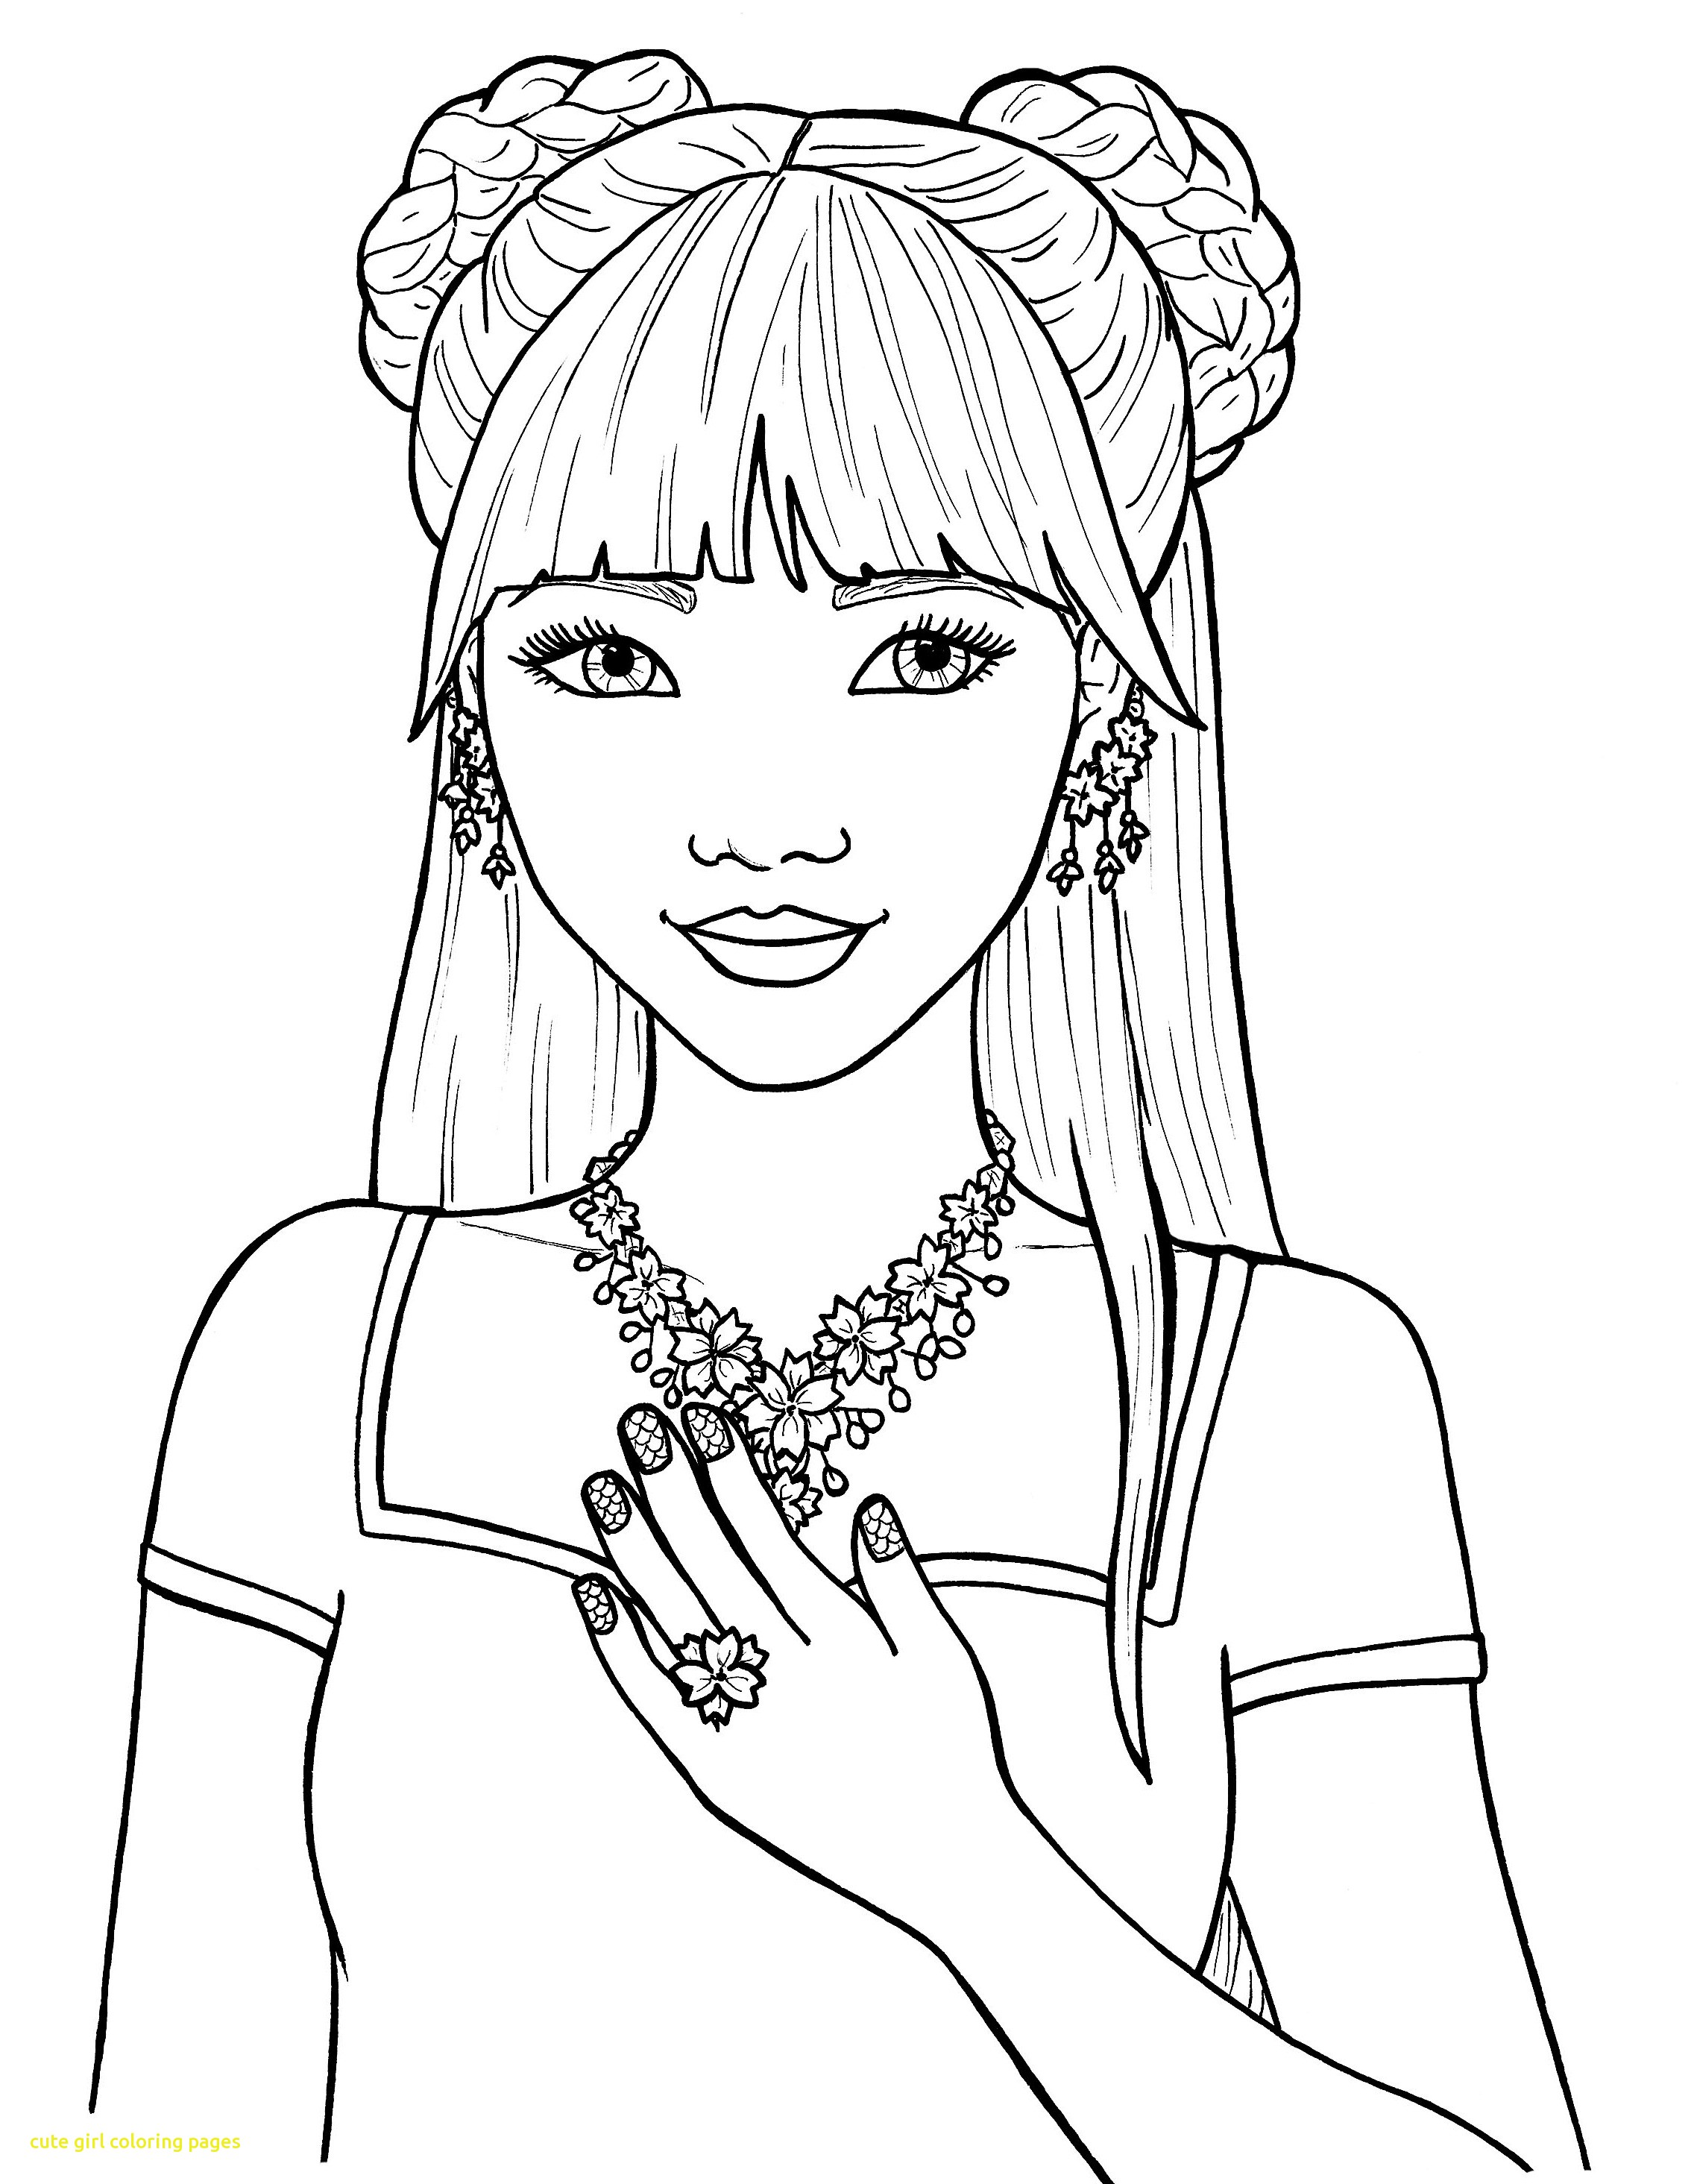 girl colering pages coloring pages for girls best coloring pages for kids girl colering pages